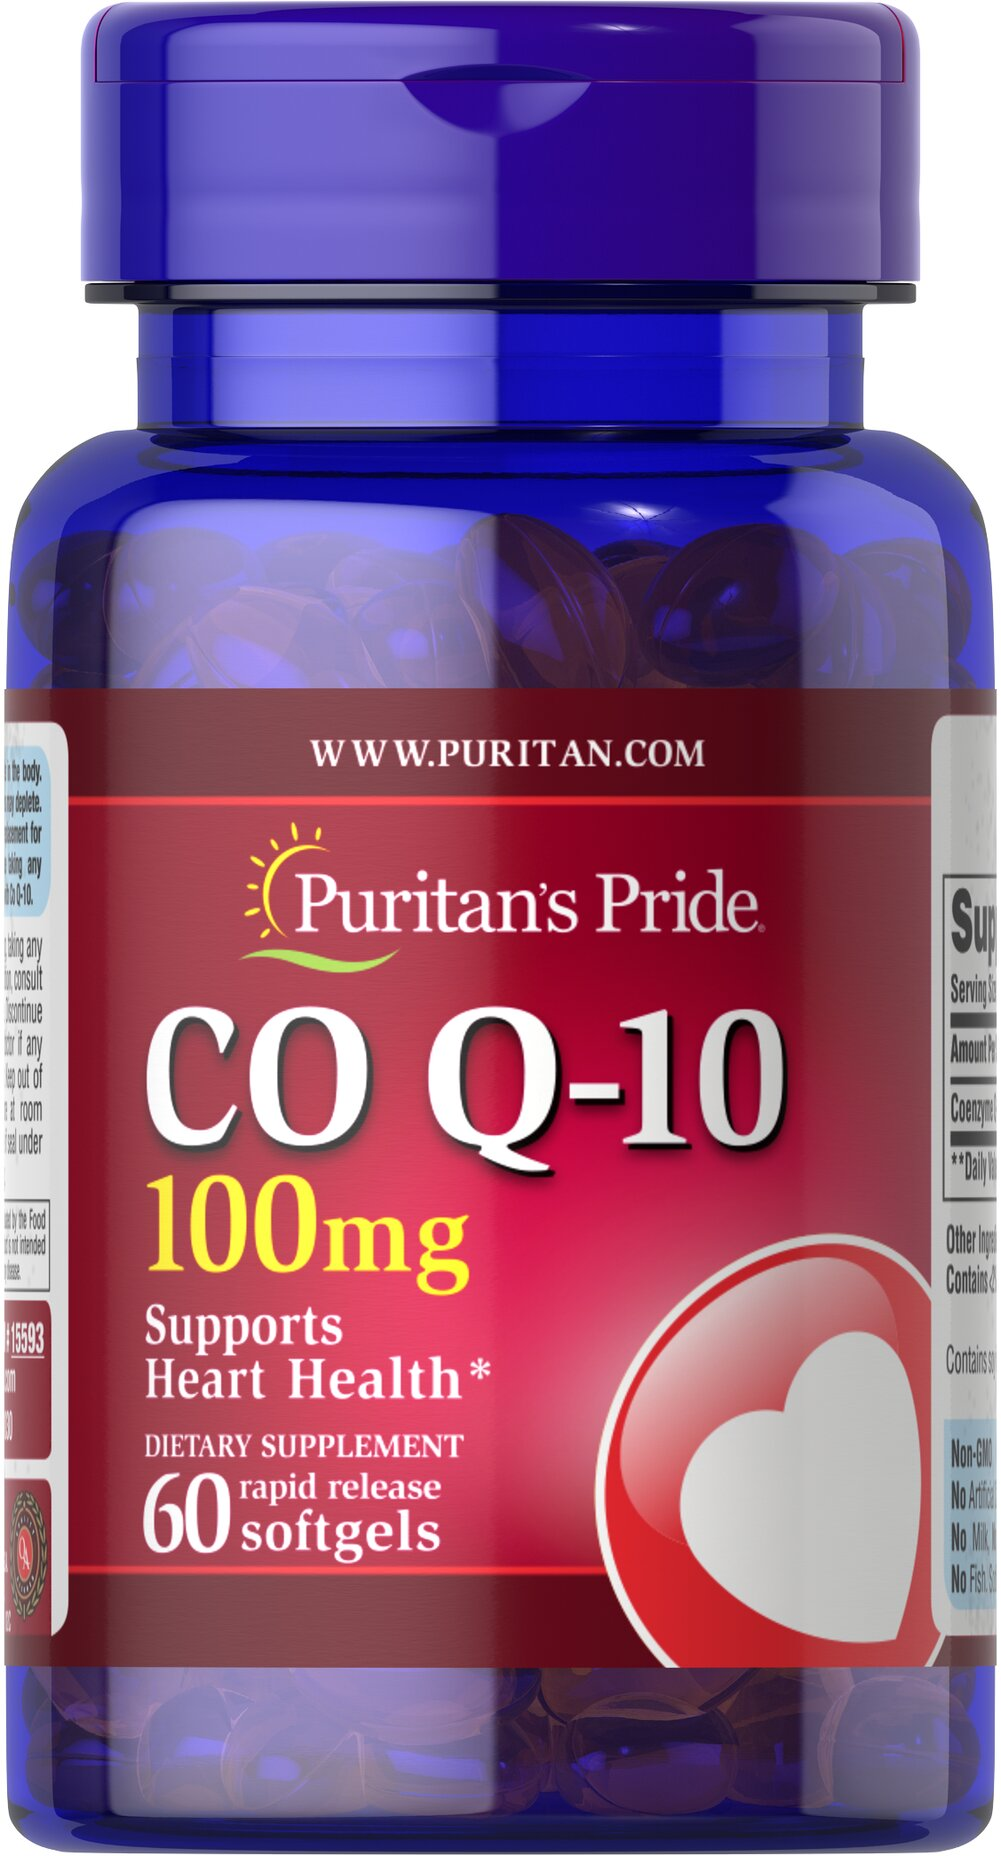 Co Q-10 100 mg <p>Puritan's Pride Q-Sorb™ Co Q-10 provides antioxidant support for your heart and ensures potency and purity.** </p><p>Our Q-Sorb™ Co Q-10 is hermetically sealed in rapid release softgels to provide superior absorption.</p><p>Contributes to your heart and cardiovascular wellness**</p><p>Helps support blood pressure levels already within a normal range**</p><p>Promotes energy production within your heart, brain, and muscles**&l